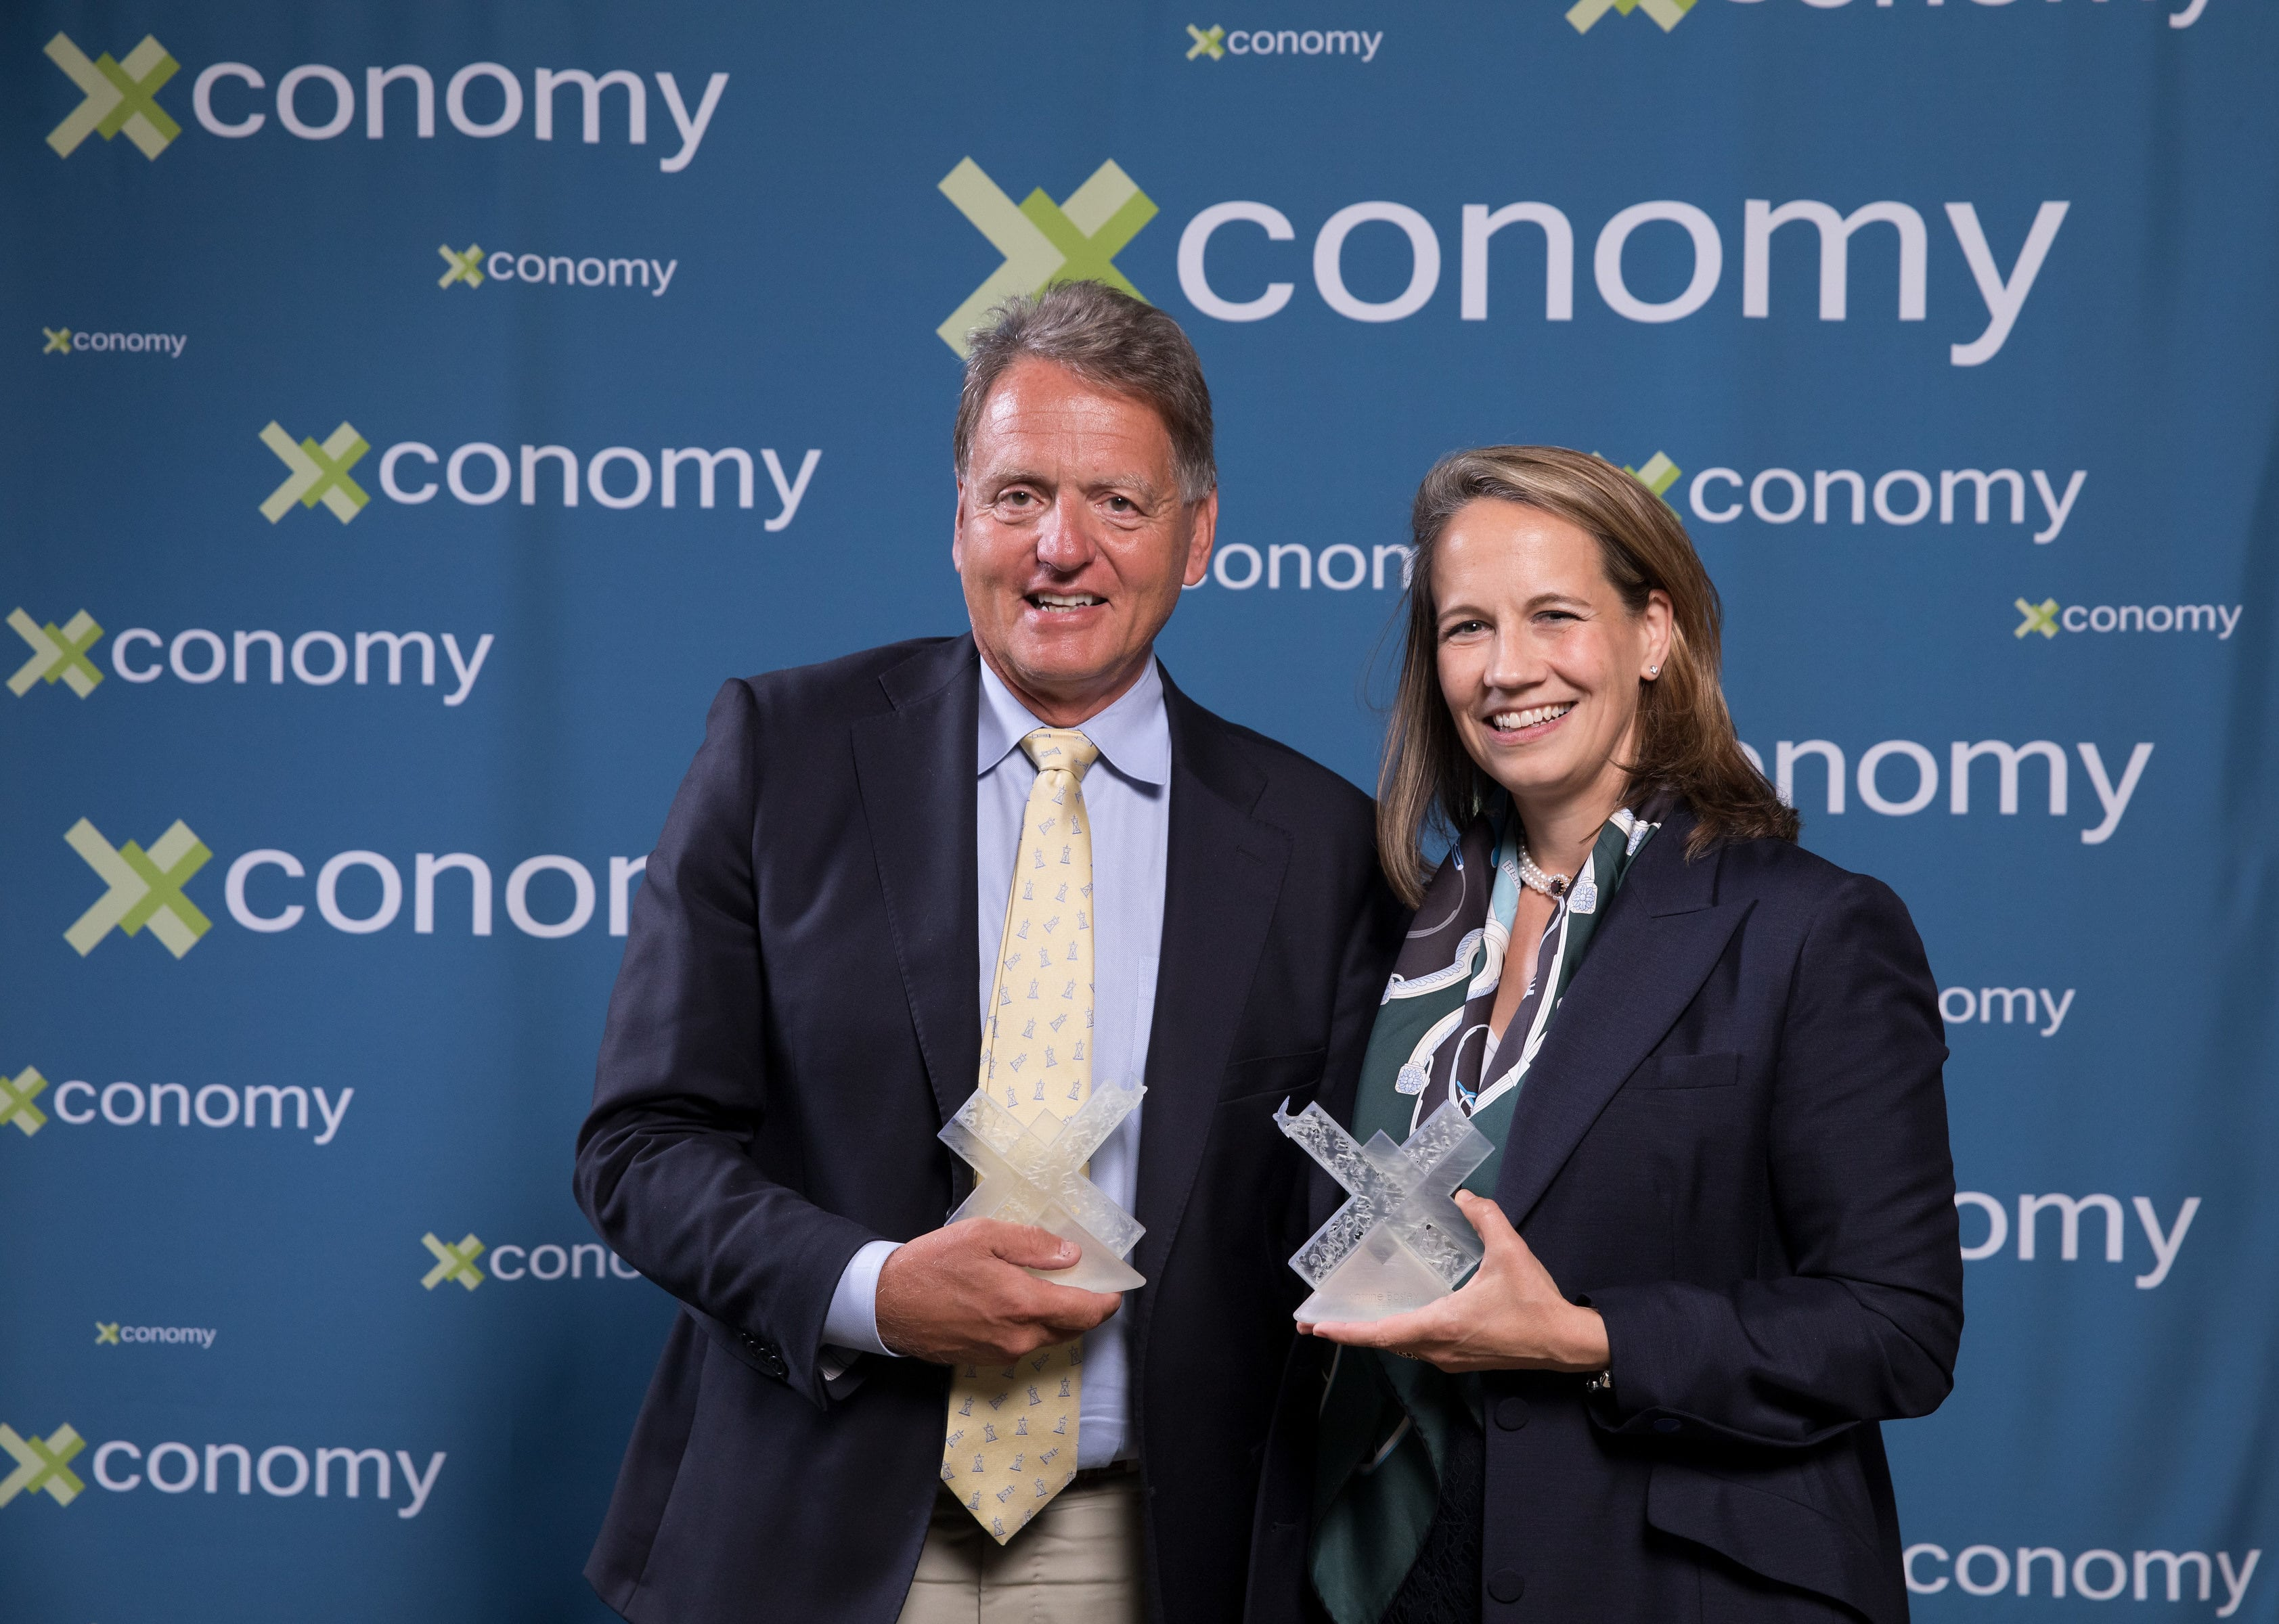 Ed Kaye and Katrine Bosley won the CEO Awards.